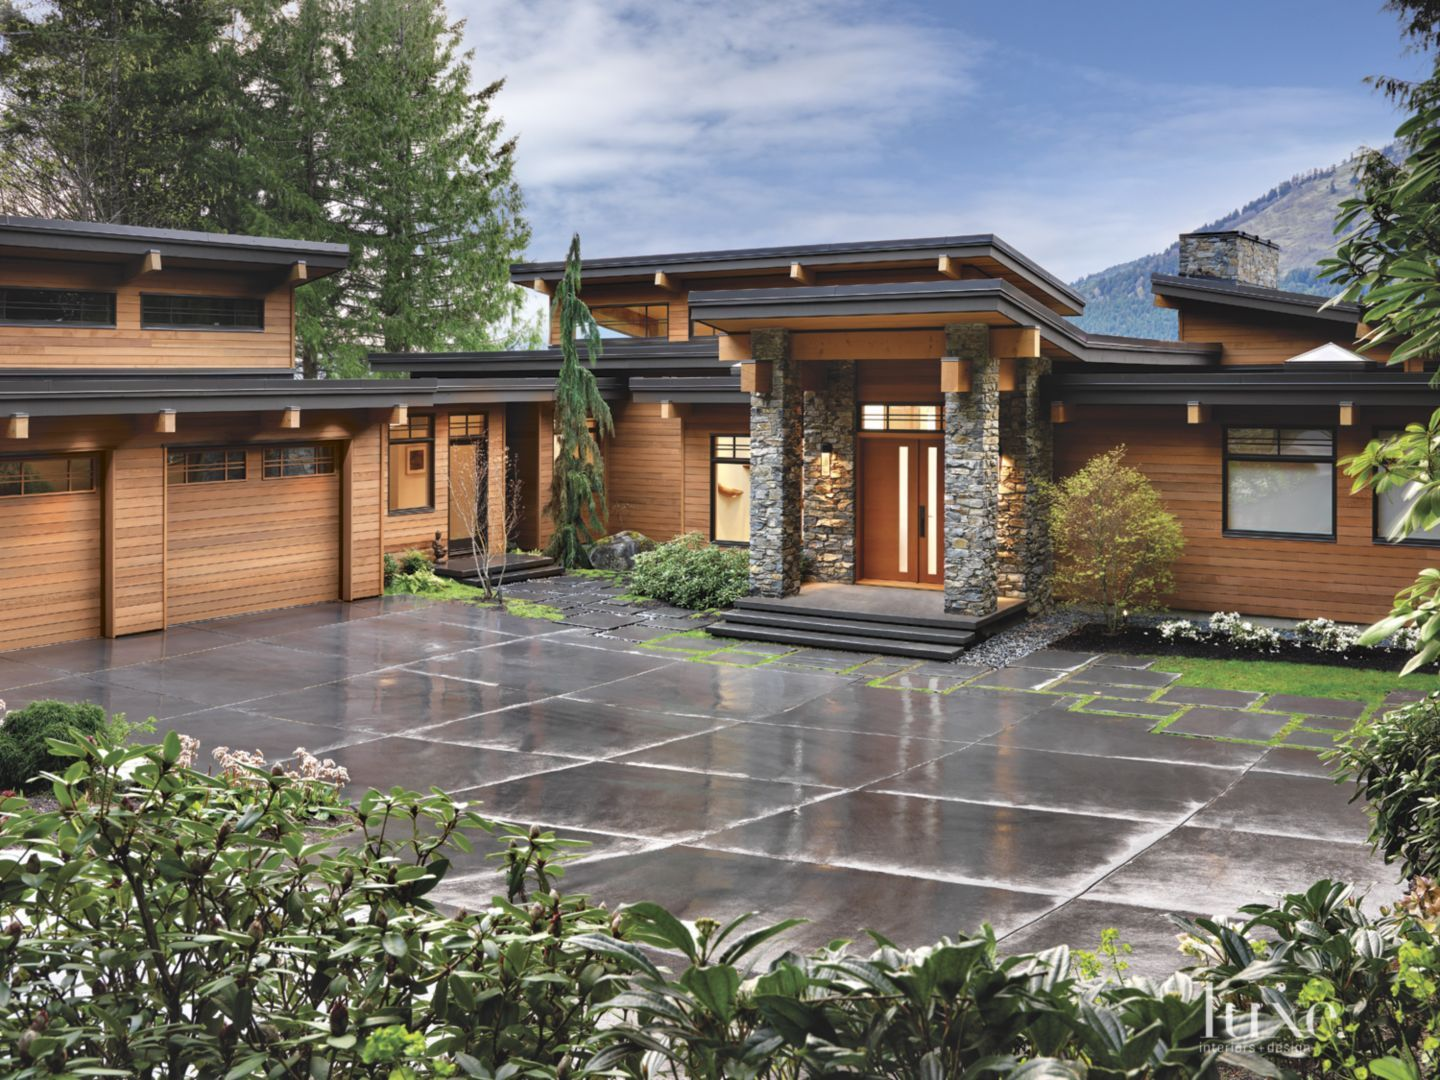 northwest modern house design, pacific northwest landscape design, northwest style interior design, nw lodge look house design, on pacific northwest exteriors home design